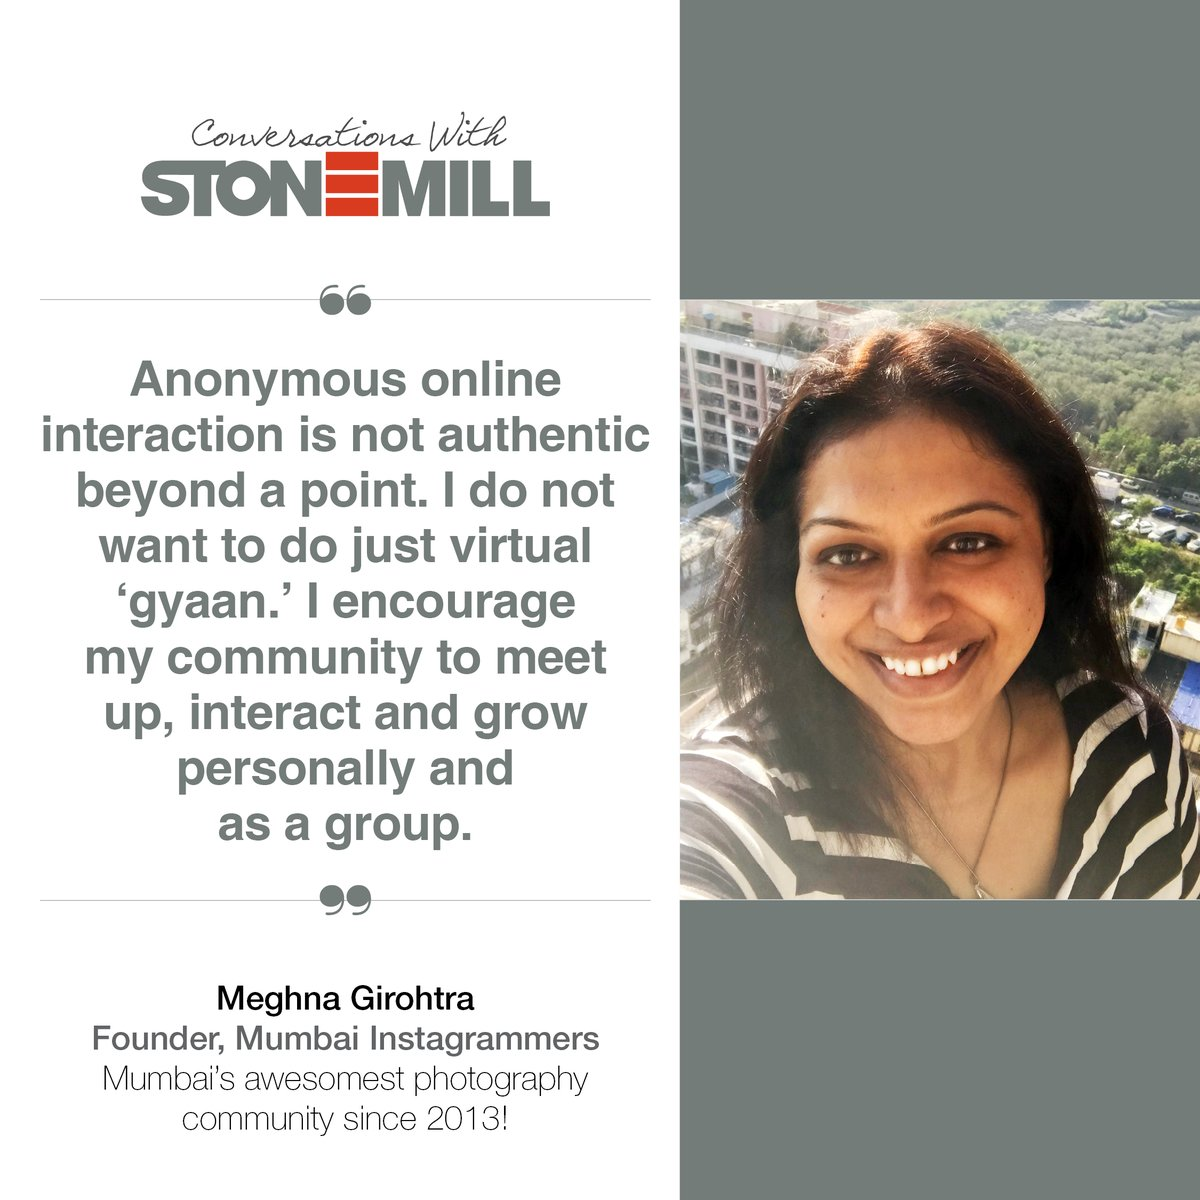 If a picture is worth thousand words, Meghna Girohtra's @mumbai_igers is worth a million.  In #conversationswithstonemill @meghnamuses talks about her #instagram journey & making offline connections through social media community. Read it on   #community